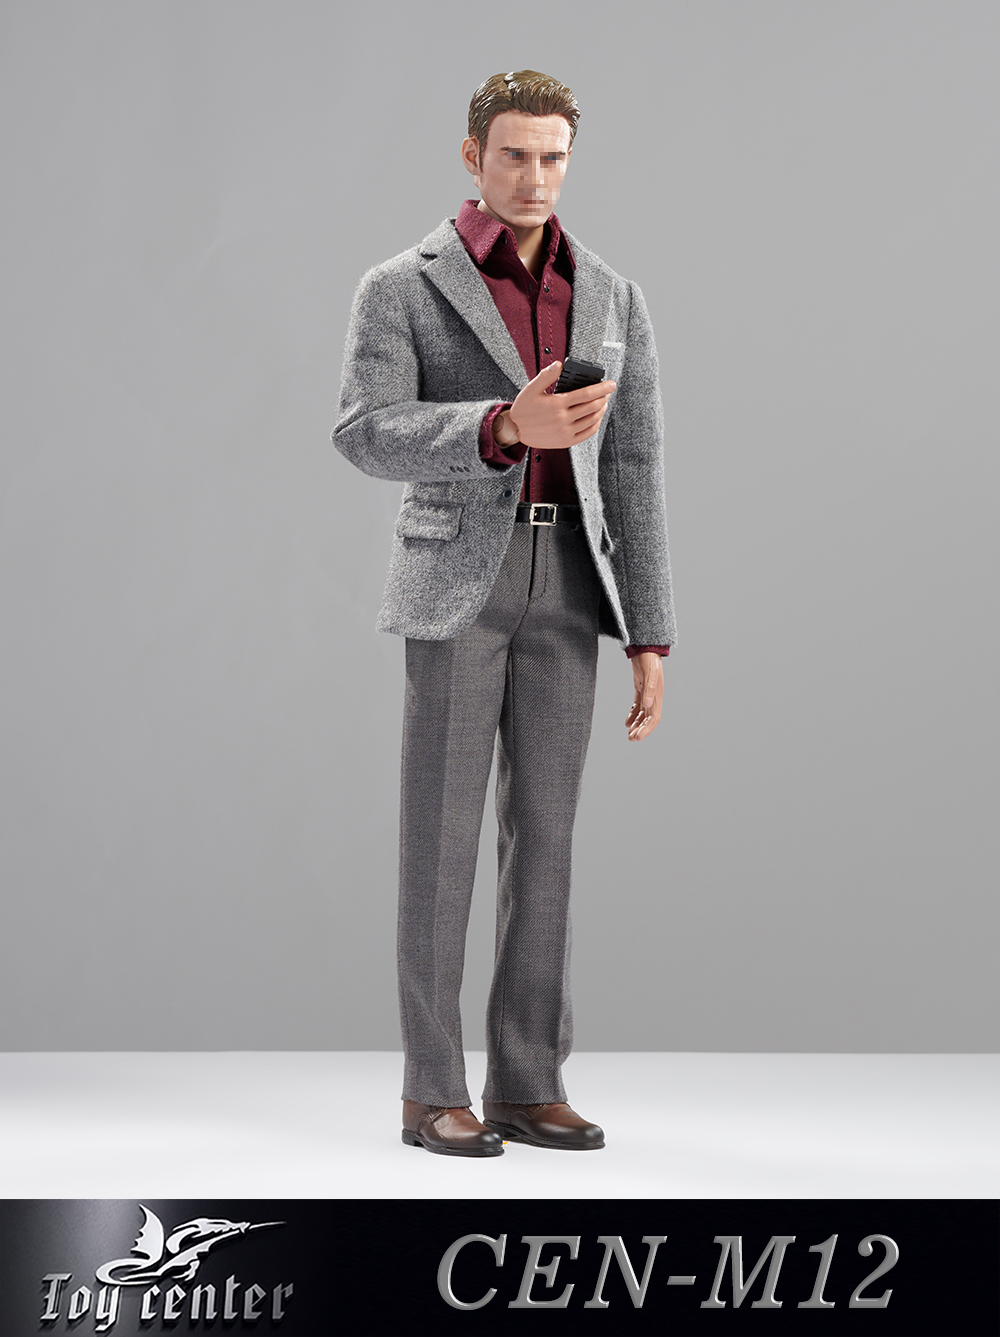 clothes - NEW PRODUCT: Toy center: 1/6 US team old casual suit CEN-M12# 16064410